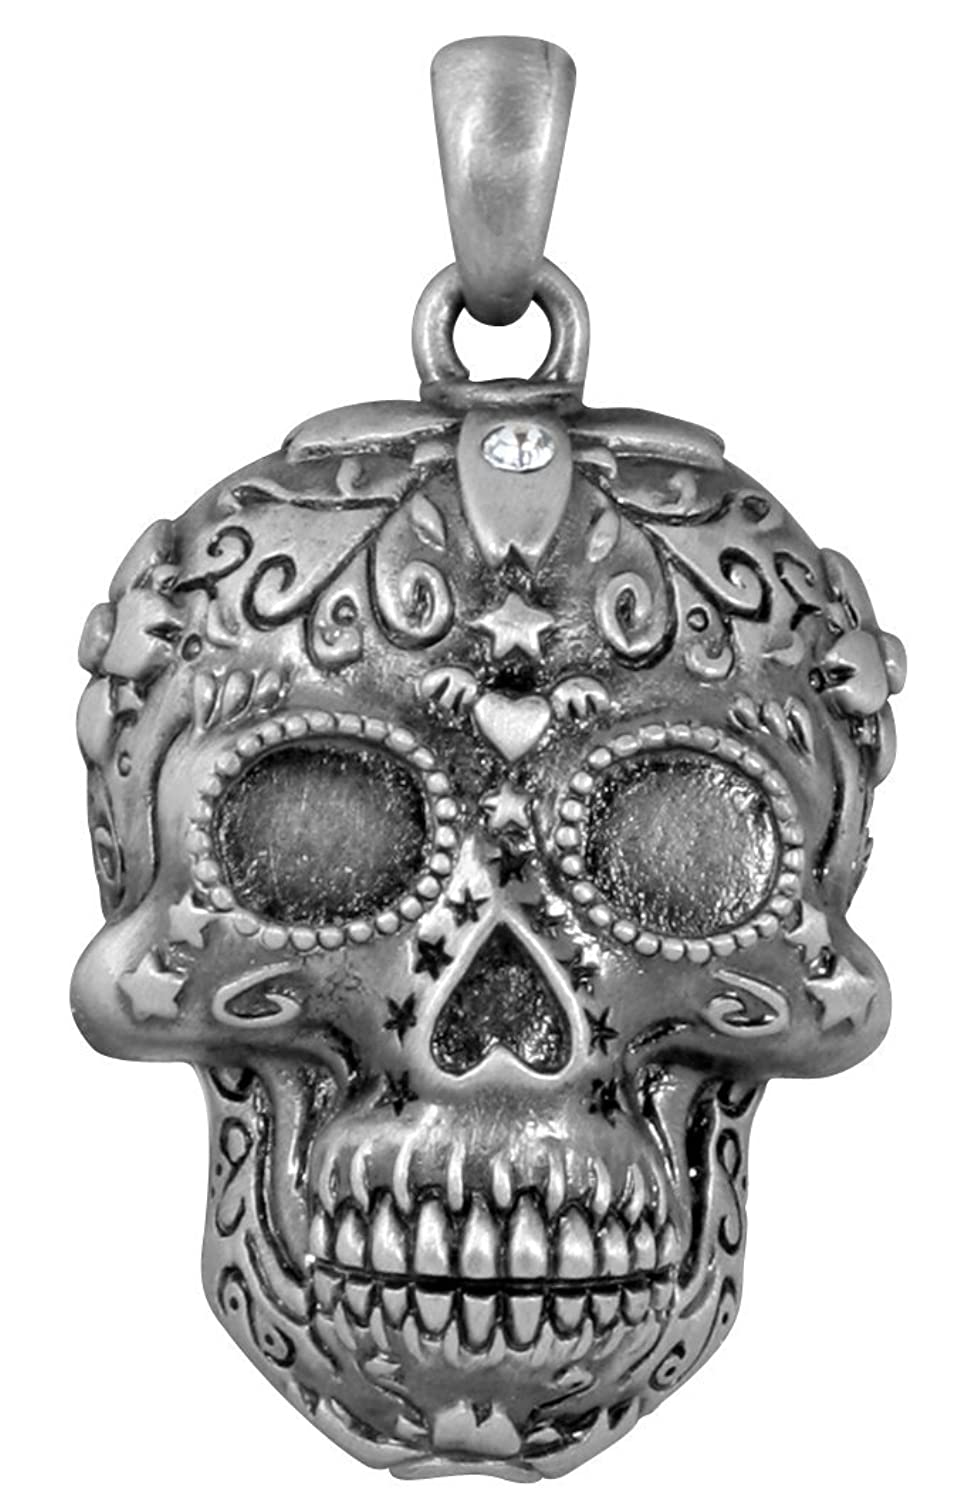 make enamel minutes it sugar by area pendant shop pendants enameled skull fullsizerender bead bay classes technique in